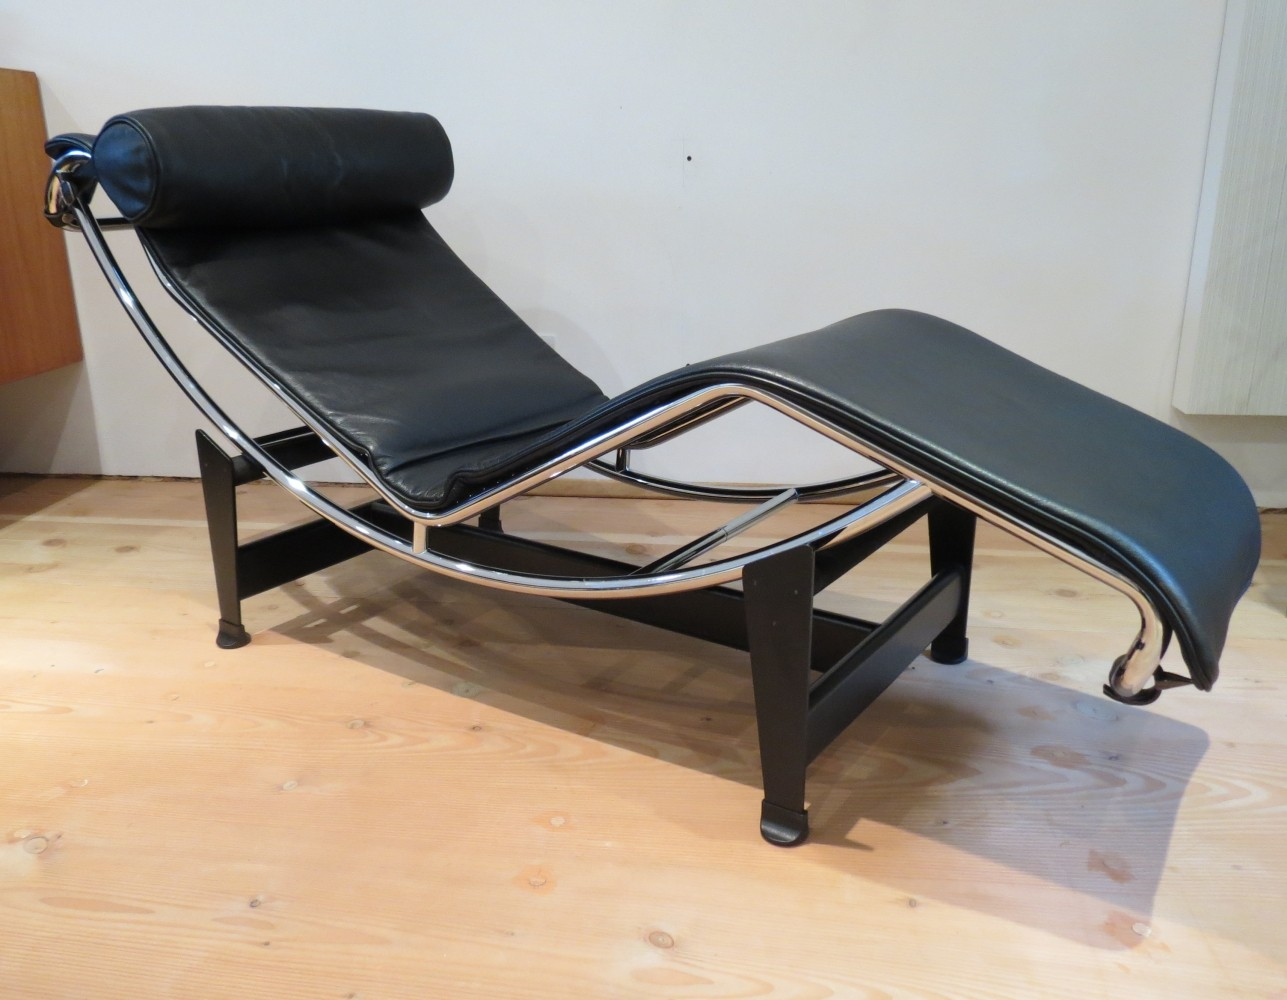 lc4 lounge chair from the nineties by le corbusier charlotte perriand for cassina 63206. Black Bedroom Furniture Sets. Home Design Ideas